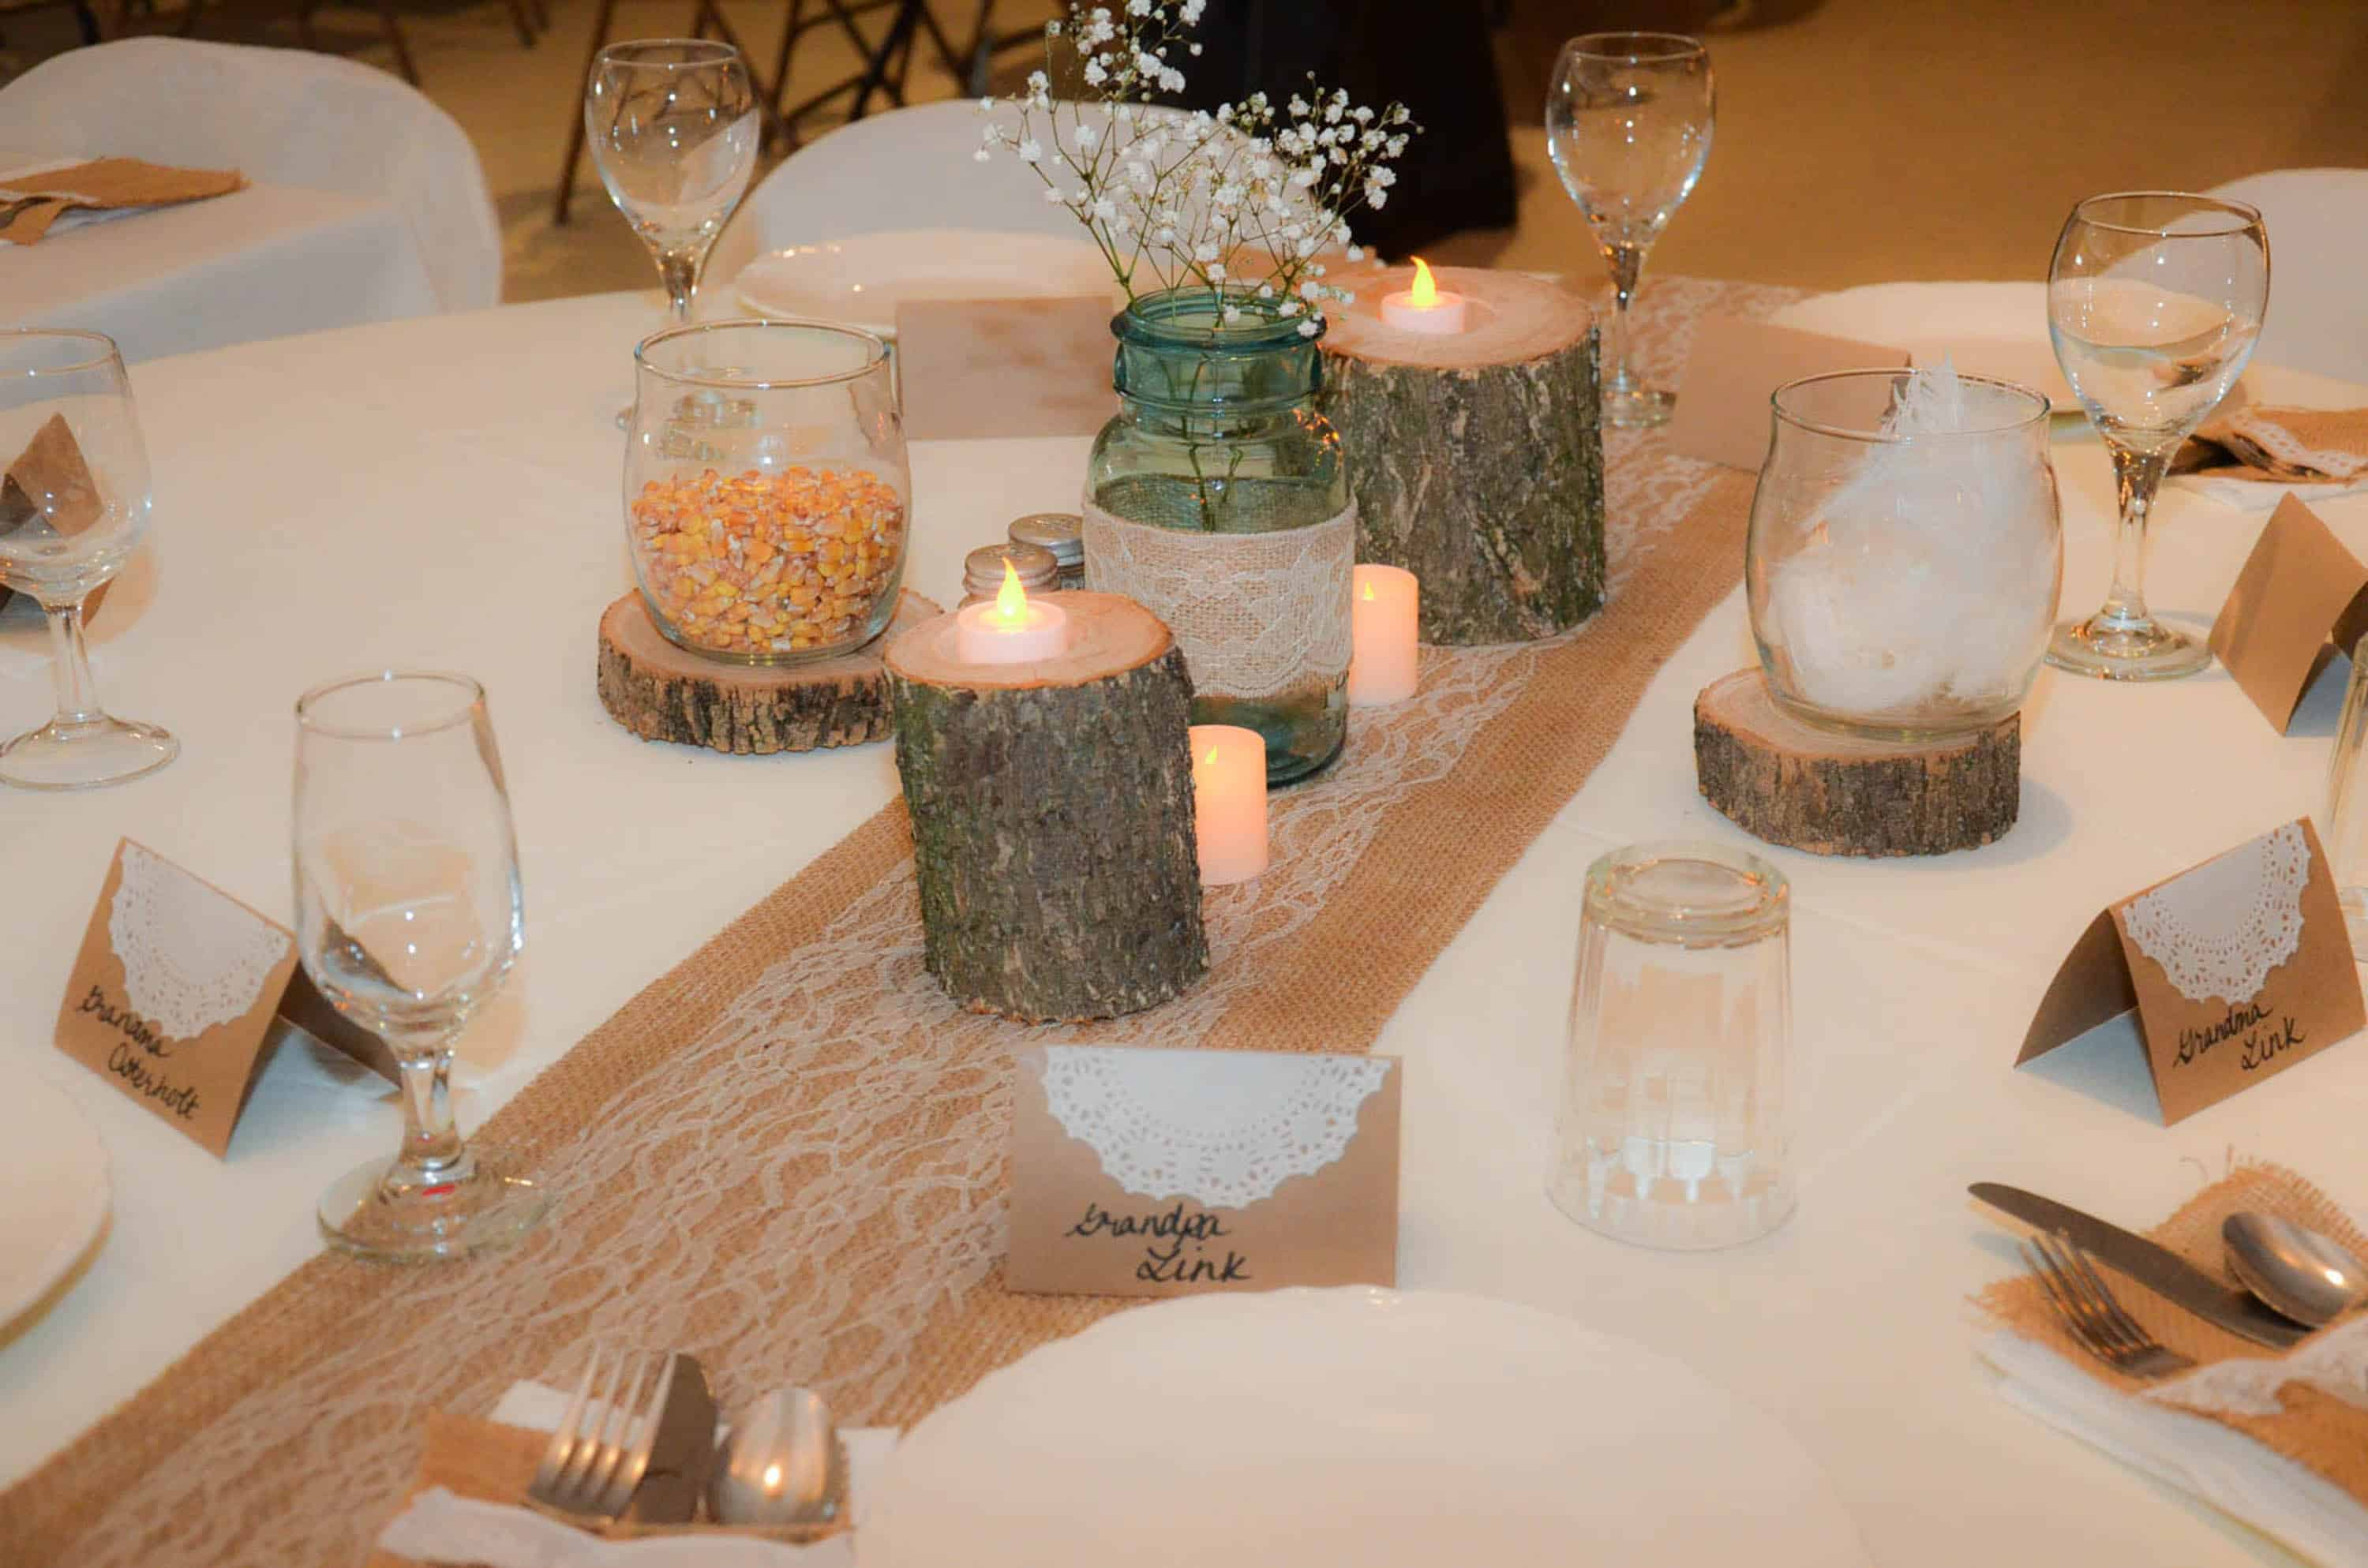 Burlap and lace country wedding decorations plowing